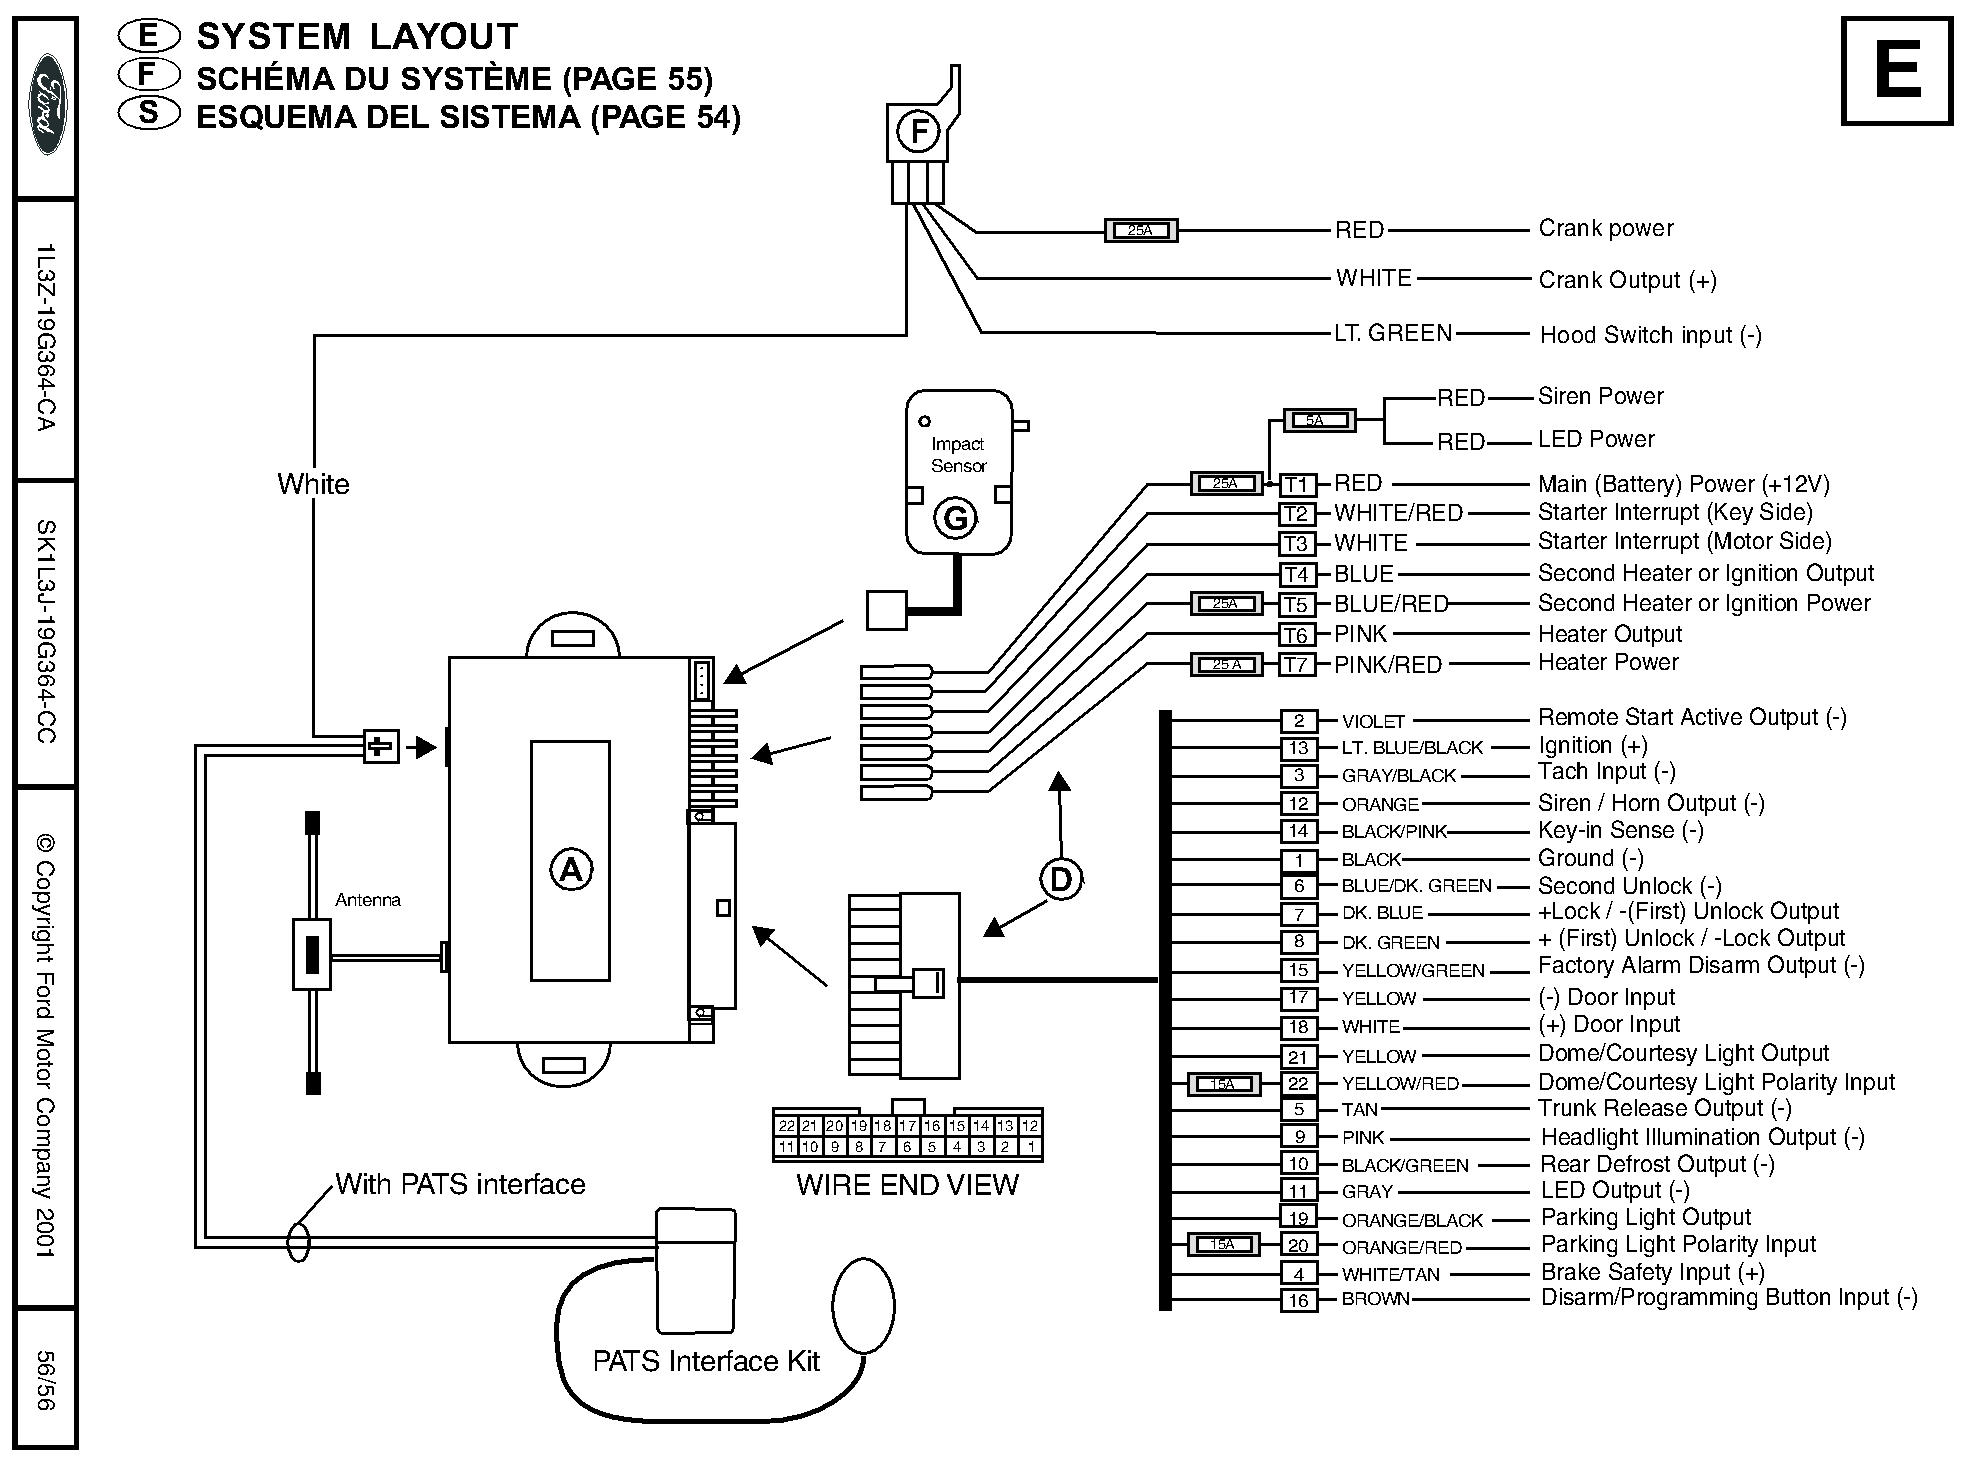 Remote Start Wiring Diagrams on Gps Tracking Wiring Diagram